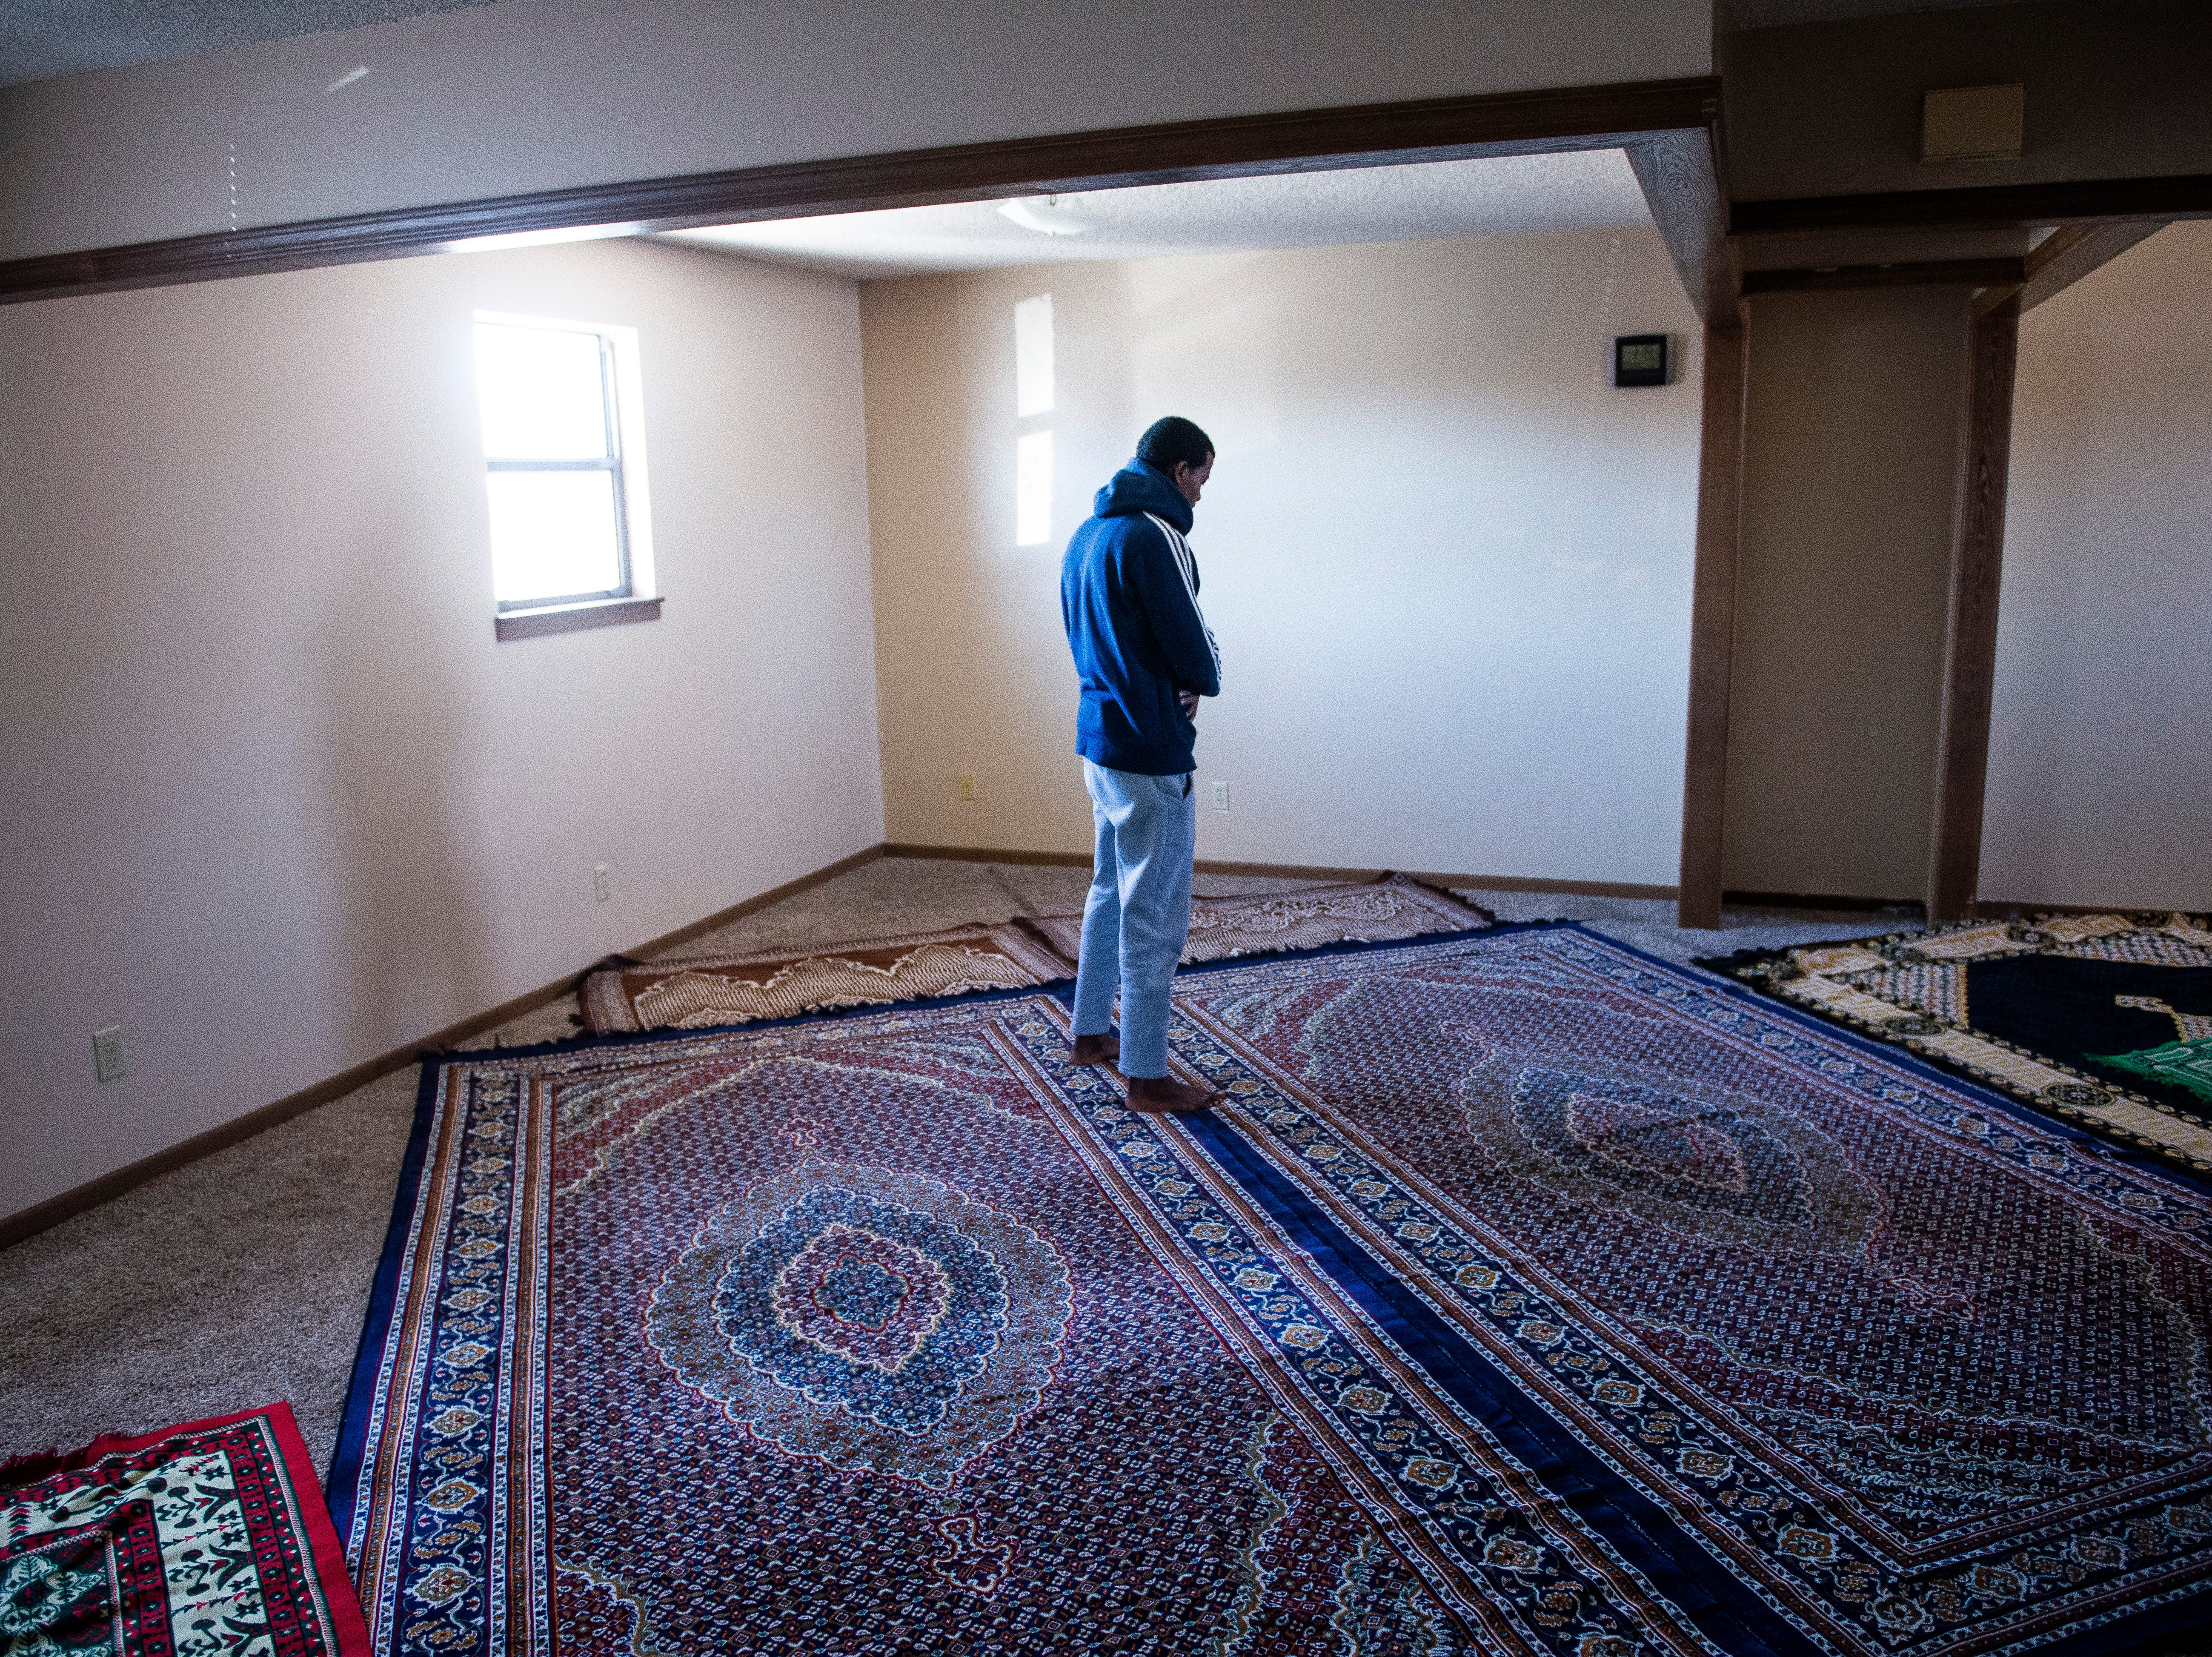 Abdulfeta Ahmed, 20, a refugee from Ethiopia, prays in an apartment that has been turned into a mosque at the Garden Spot Apartments Wednesday, Jan. 23, 2019.